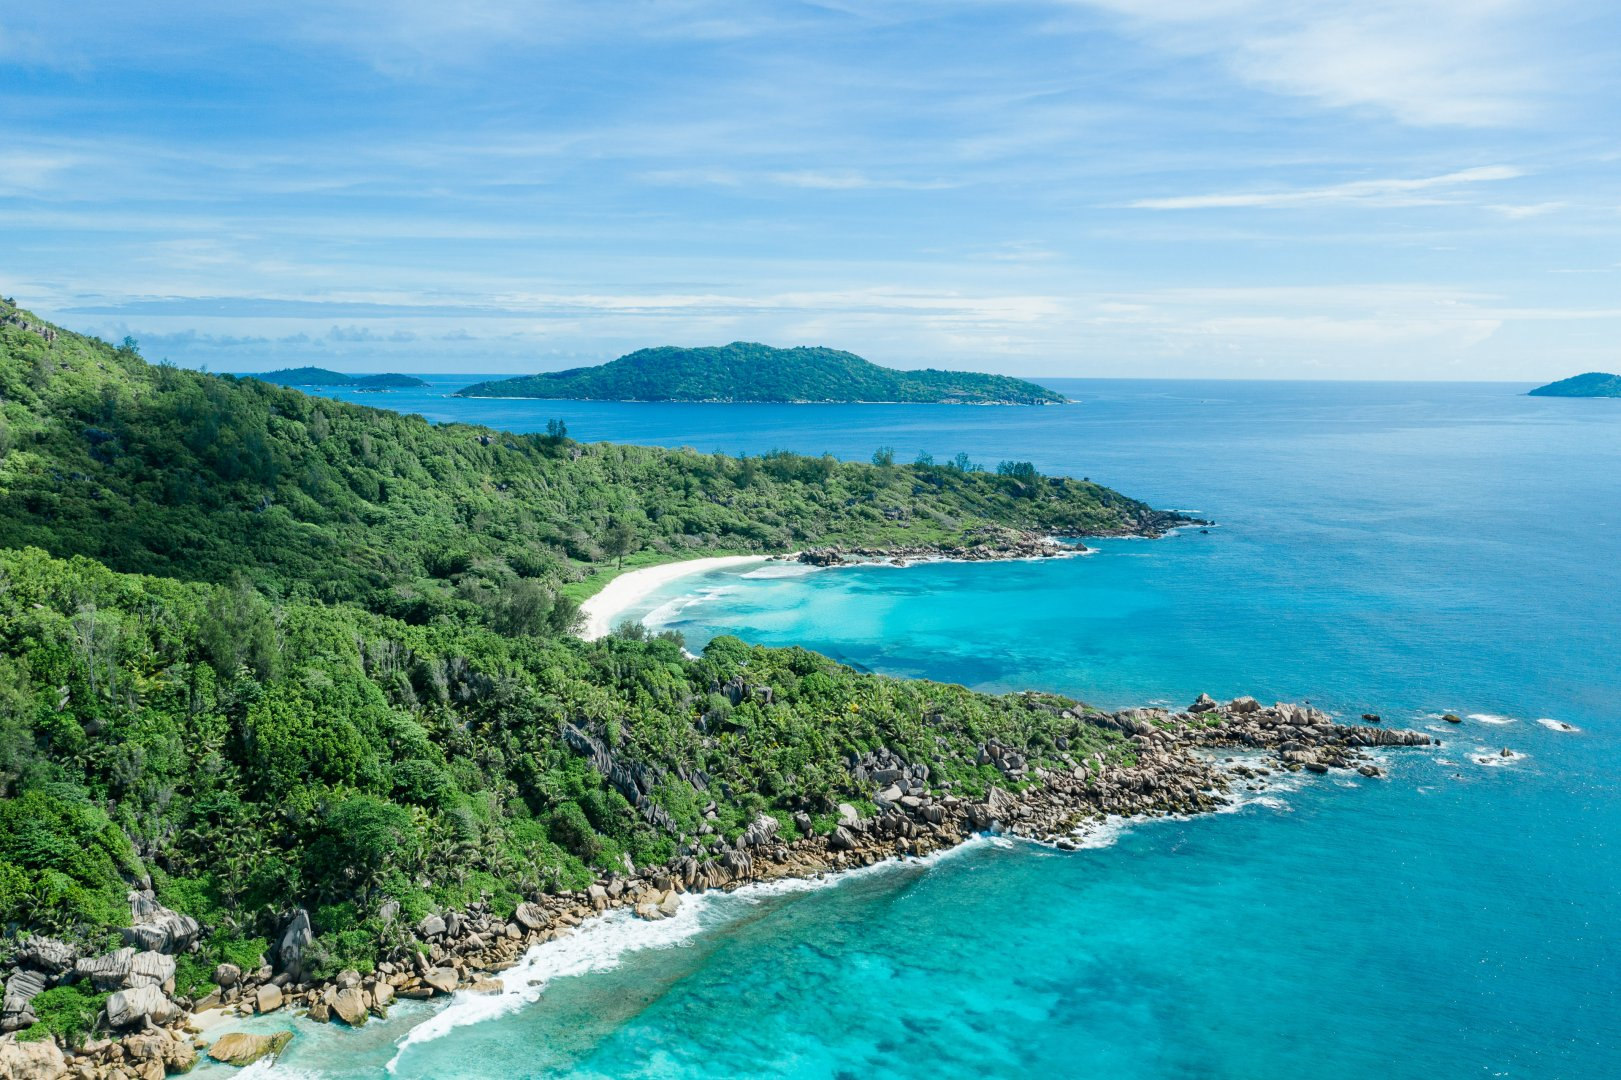 Body of water Coast Coastal and oceanic landforms Natural landscape Sea Promontory Bight Headland Bay Ocean Inlet Tropics Water resources Water Shore Cape Lagoon Cove Sound Peninsula Island Caribbean Vacation Beach Landscape Tourism Mountain Islet Aerial photography National park